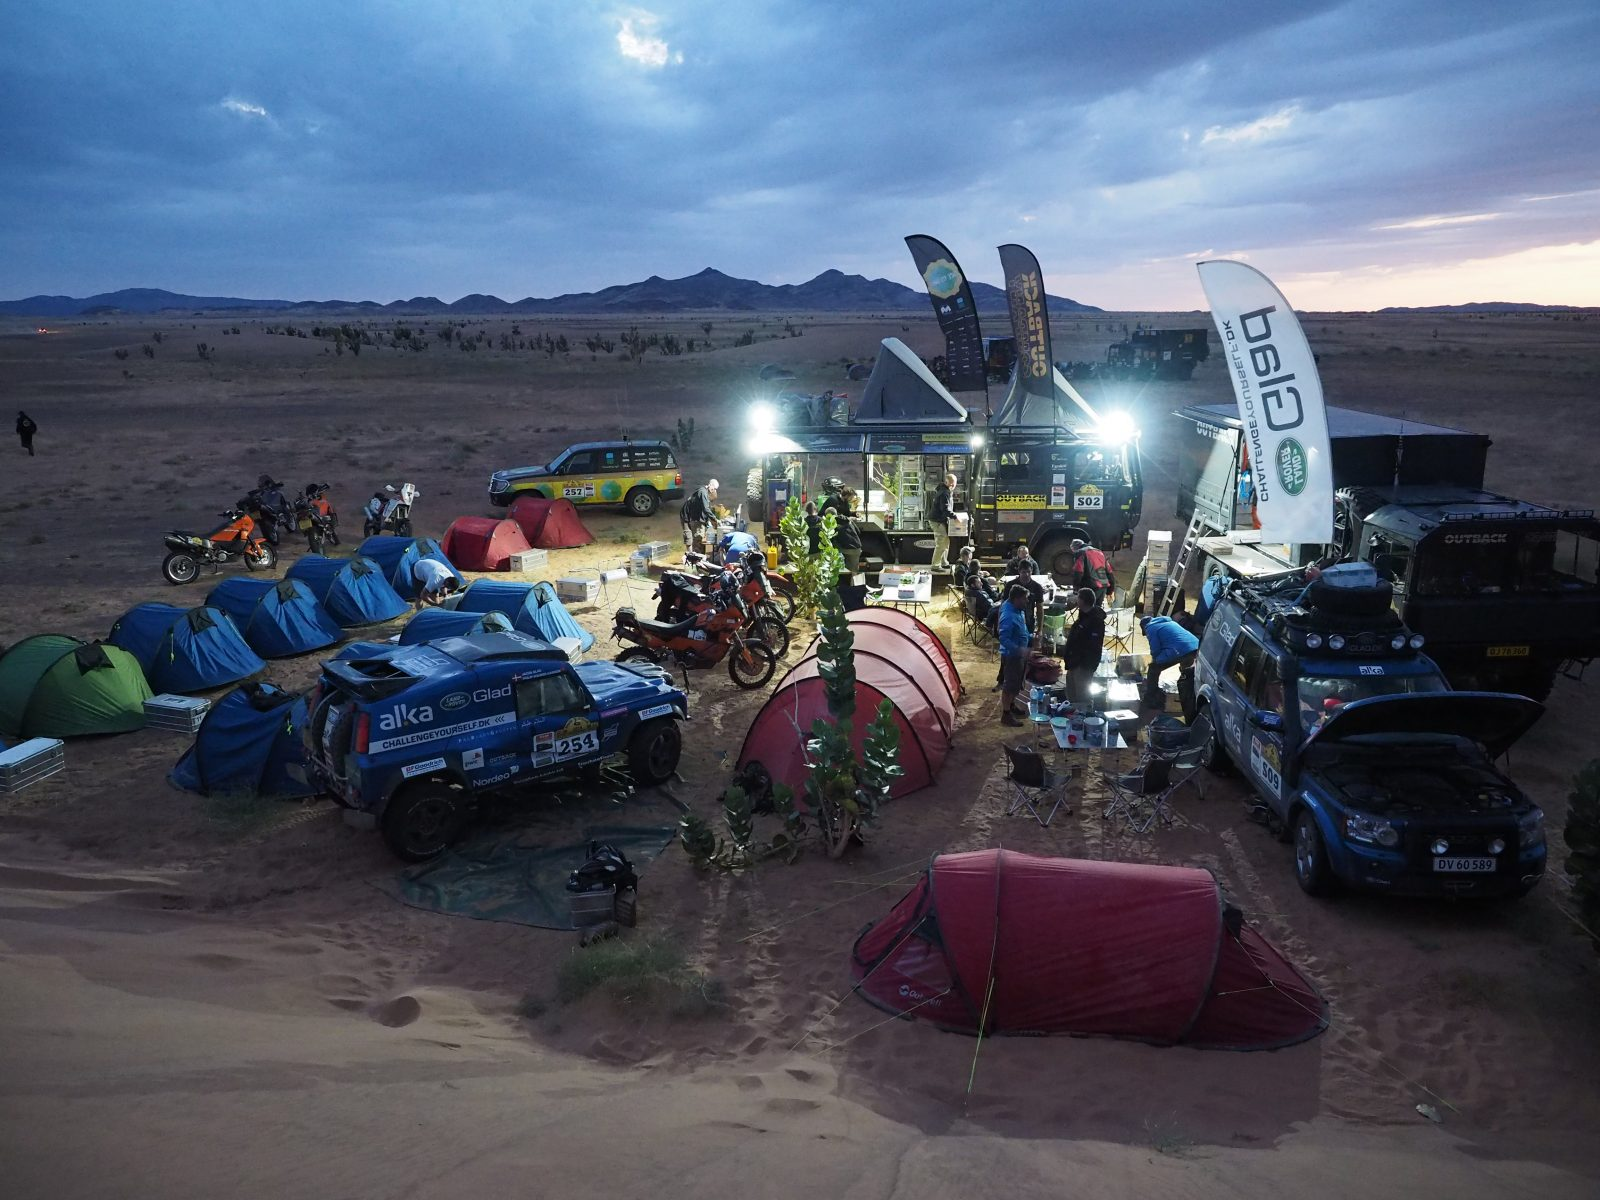 Camp in the desert during The Real Way to Dakar